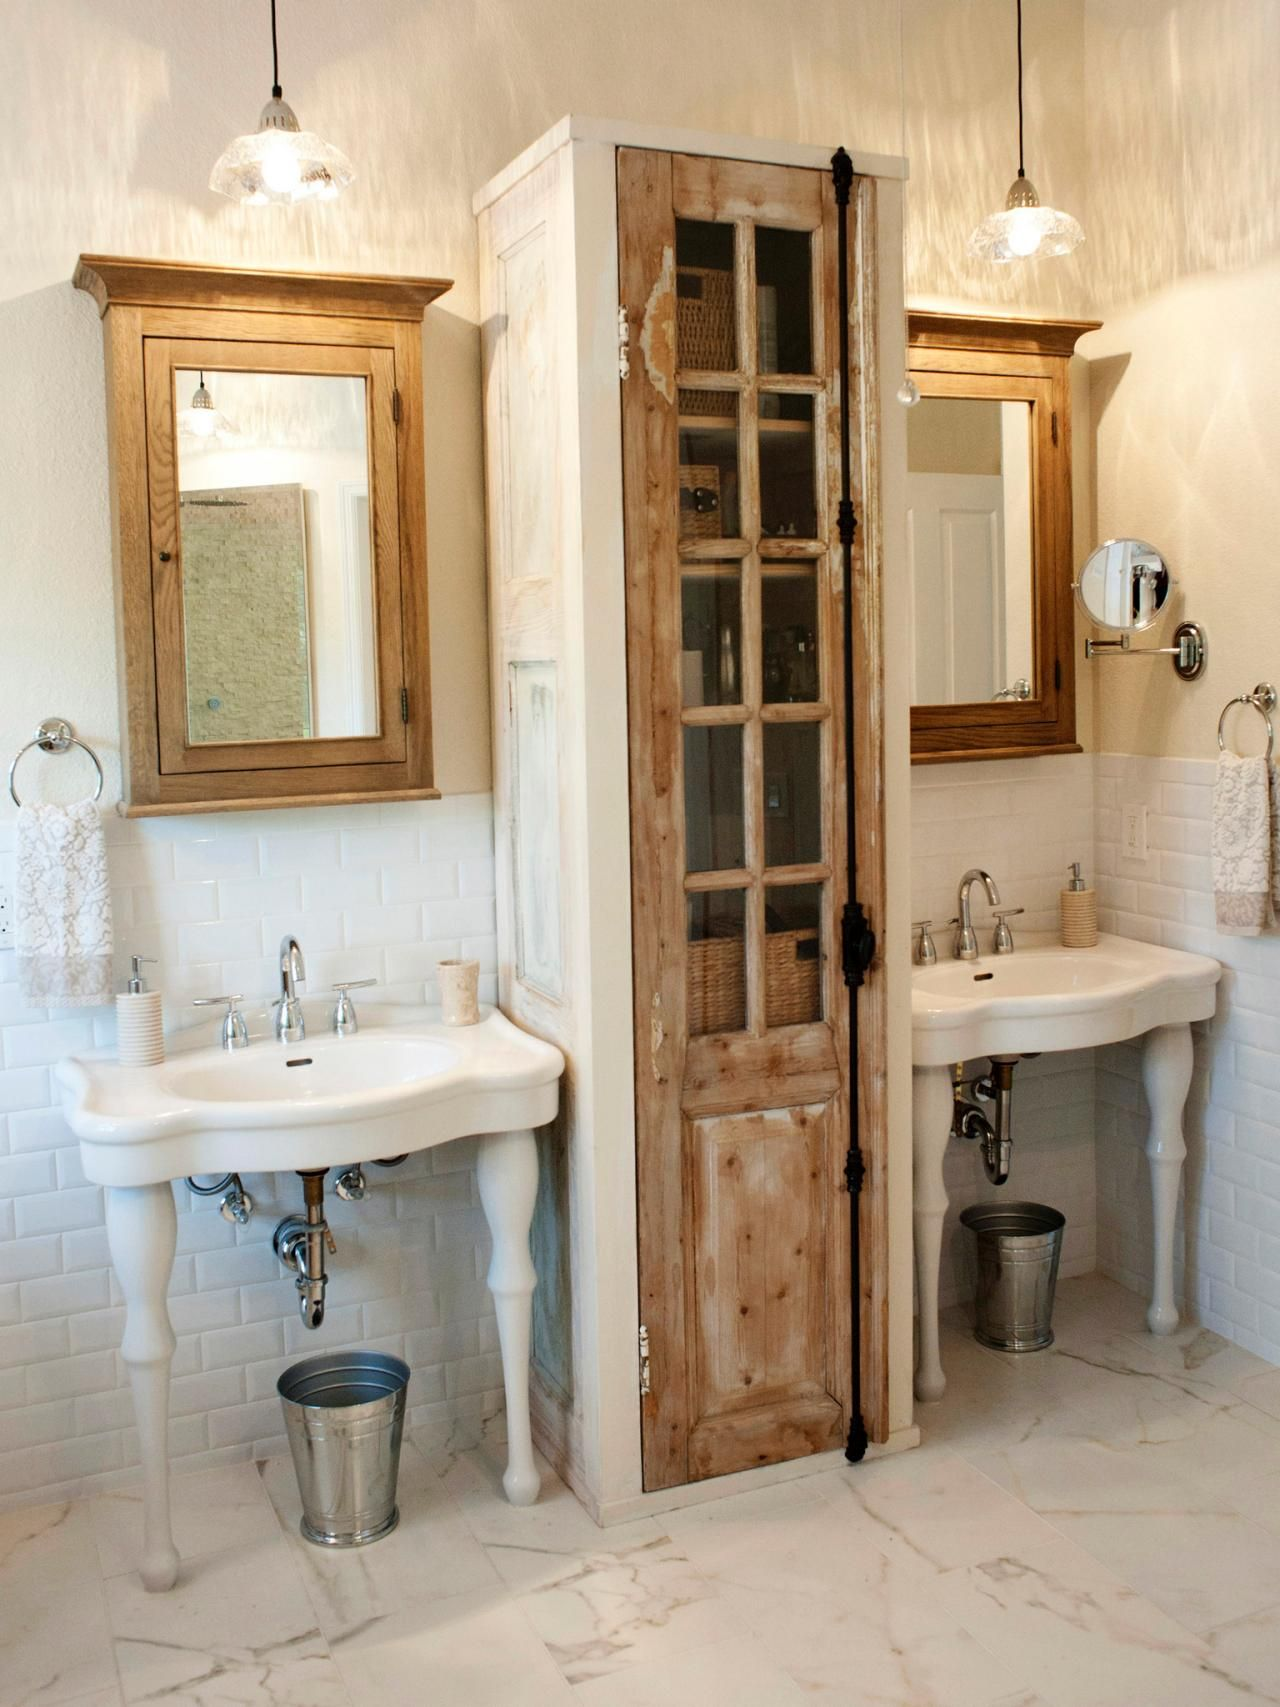 ideas for bathroom storage in small bathrooms creative bathroom storage ideas bathroom storage vintage bathroom cabinet small bathroom storage 4810